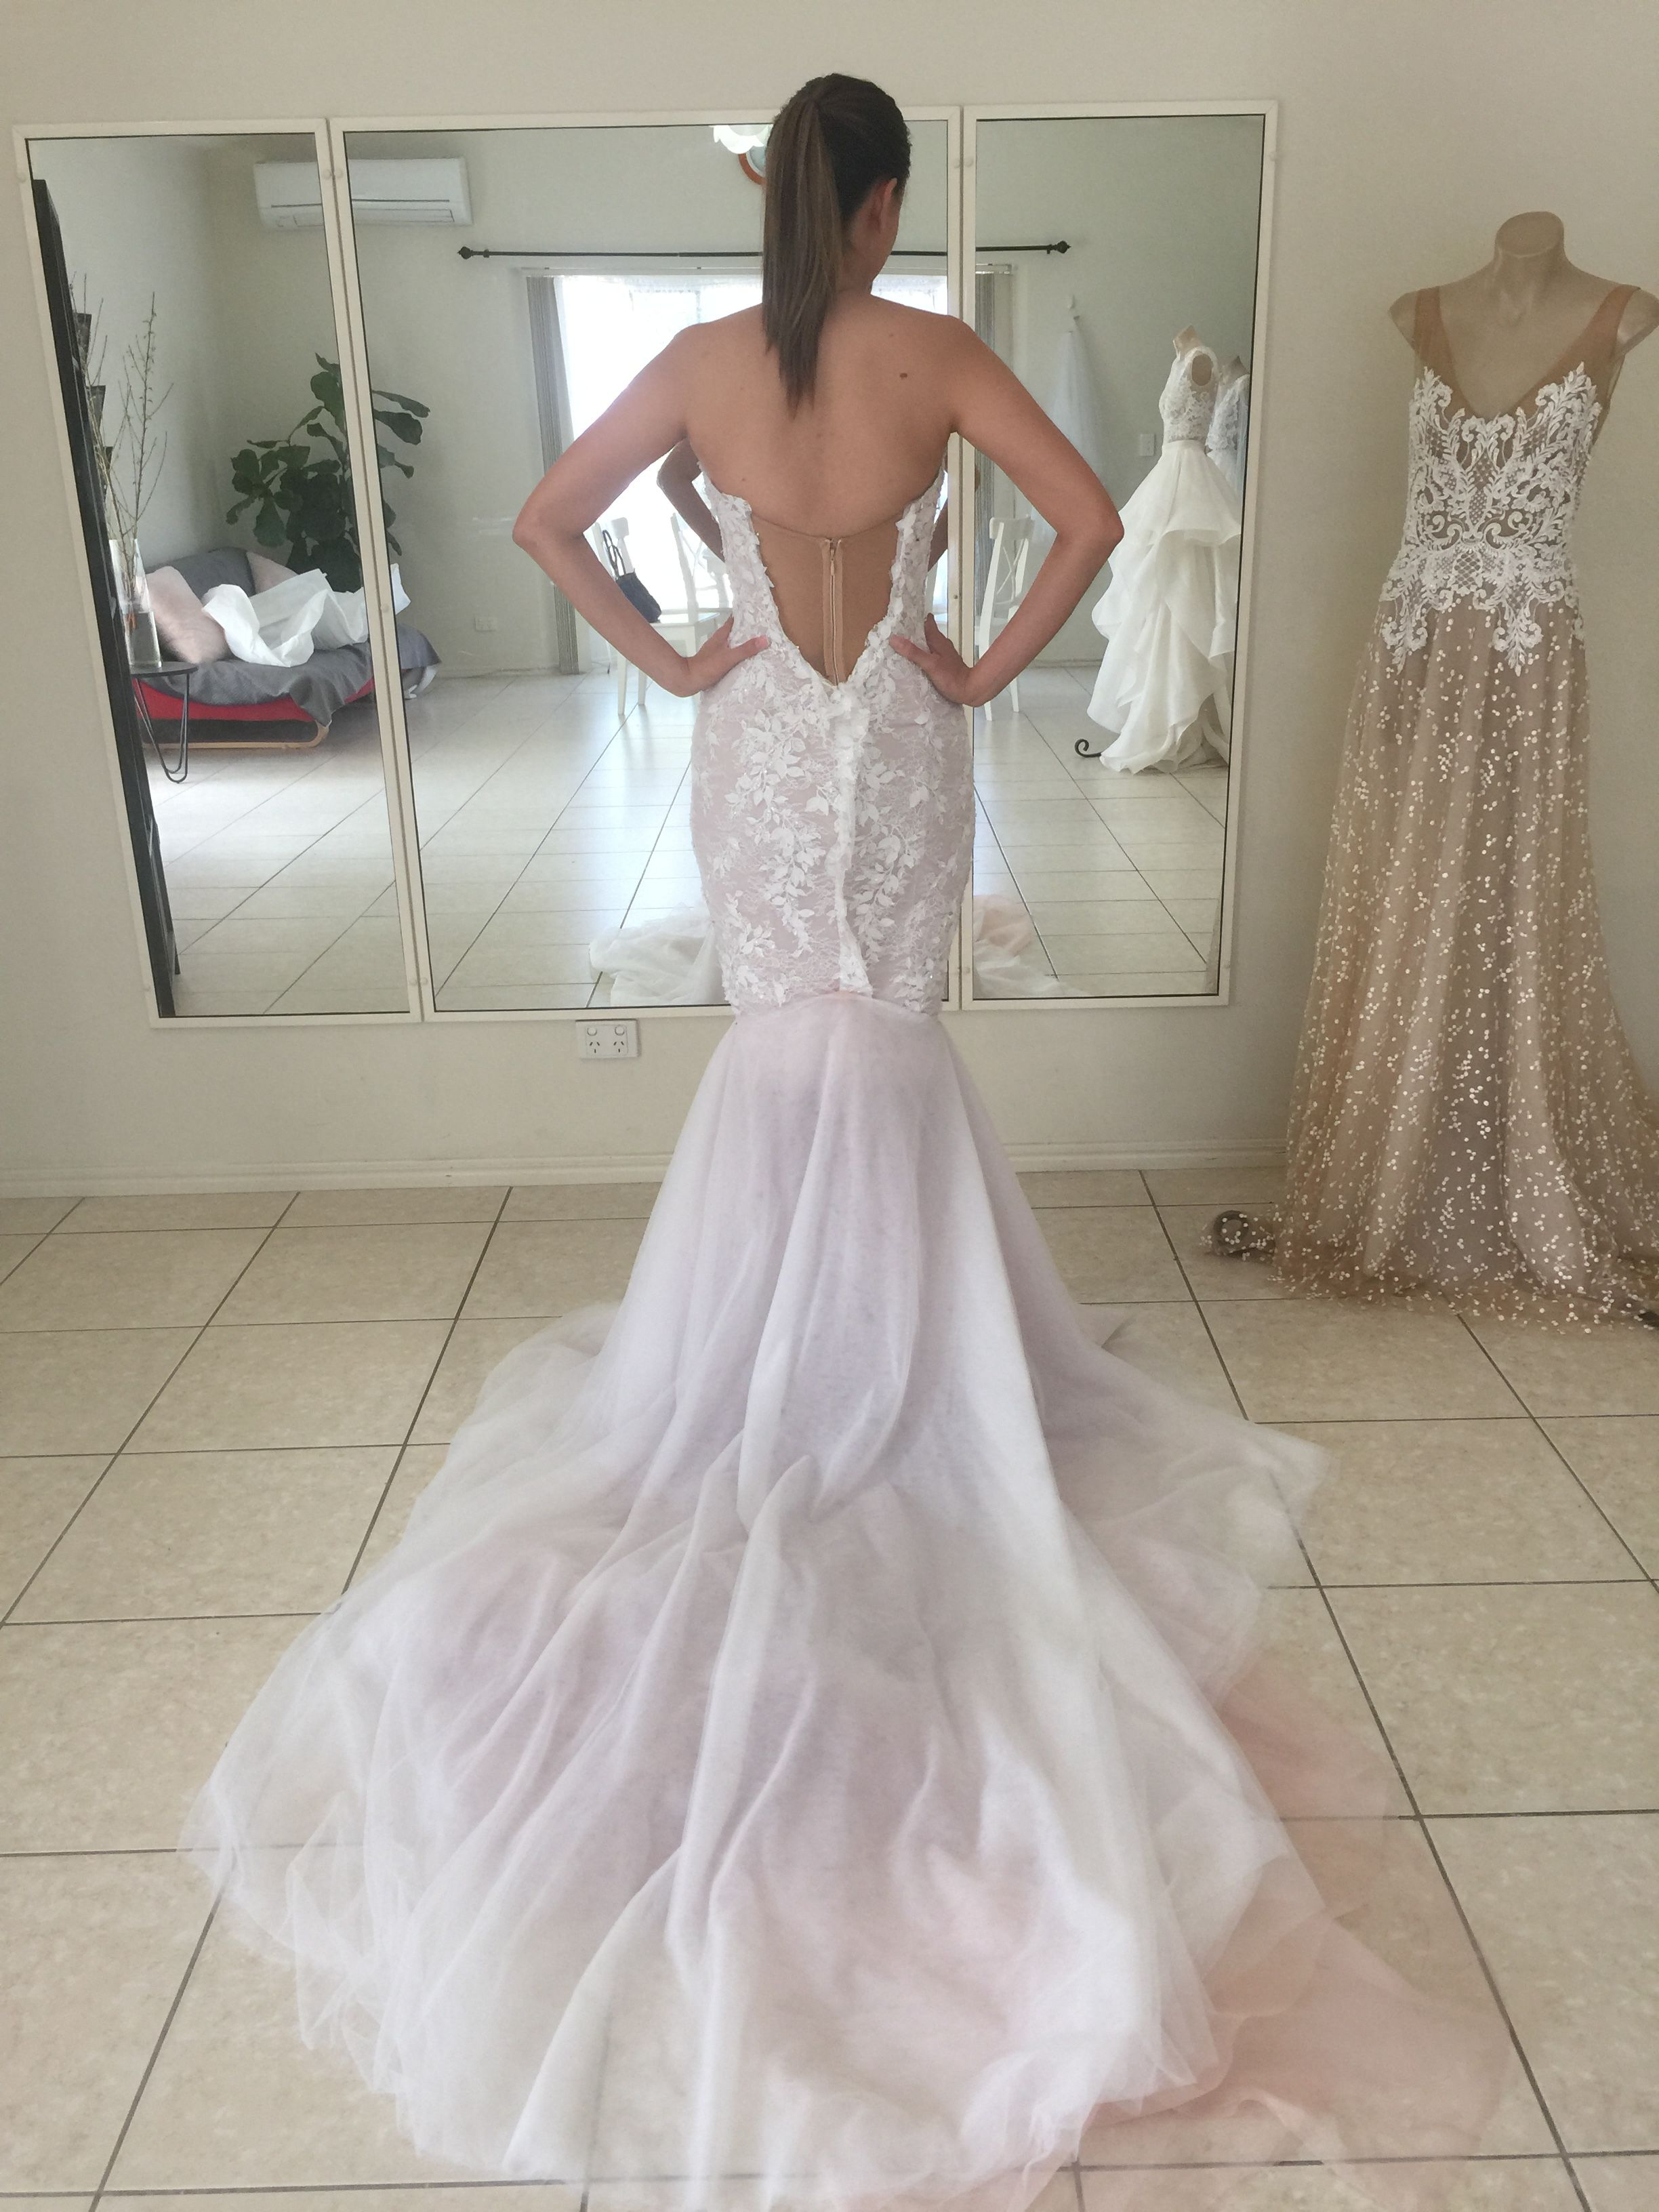 A Look Inside One Of Our Fittings With The Lovely Tammy Before Her Brisbane Wedding Weddingdress Bride Married In 2020 Mermaid Wedding Dress Wedding Dresses Bride